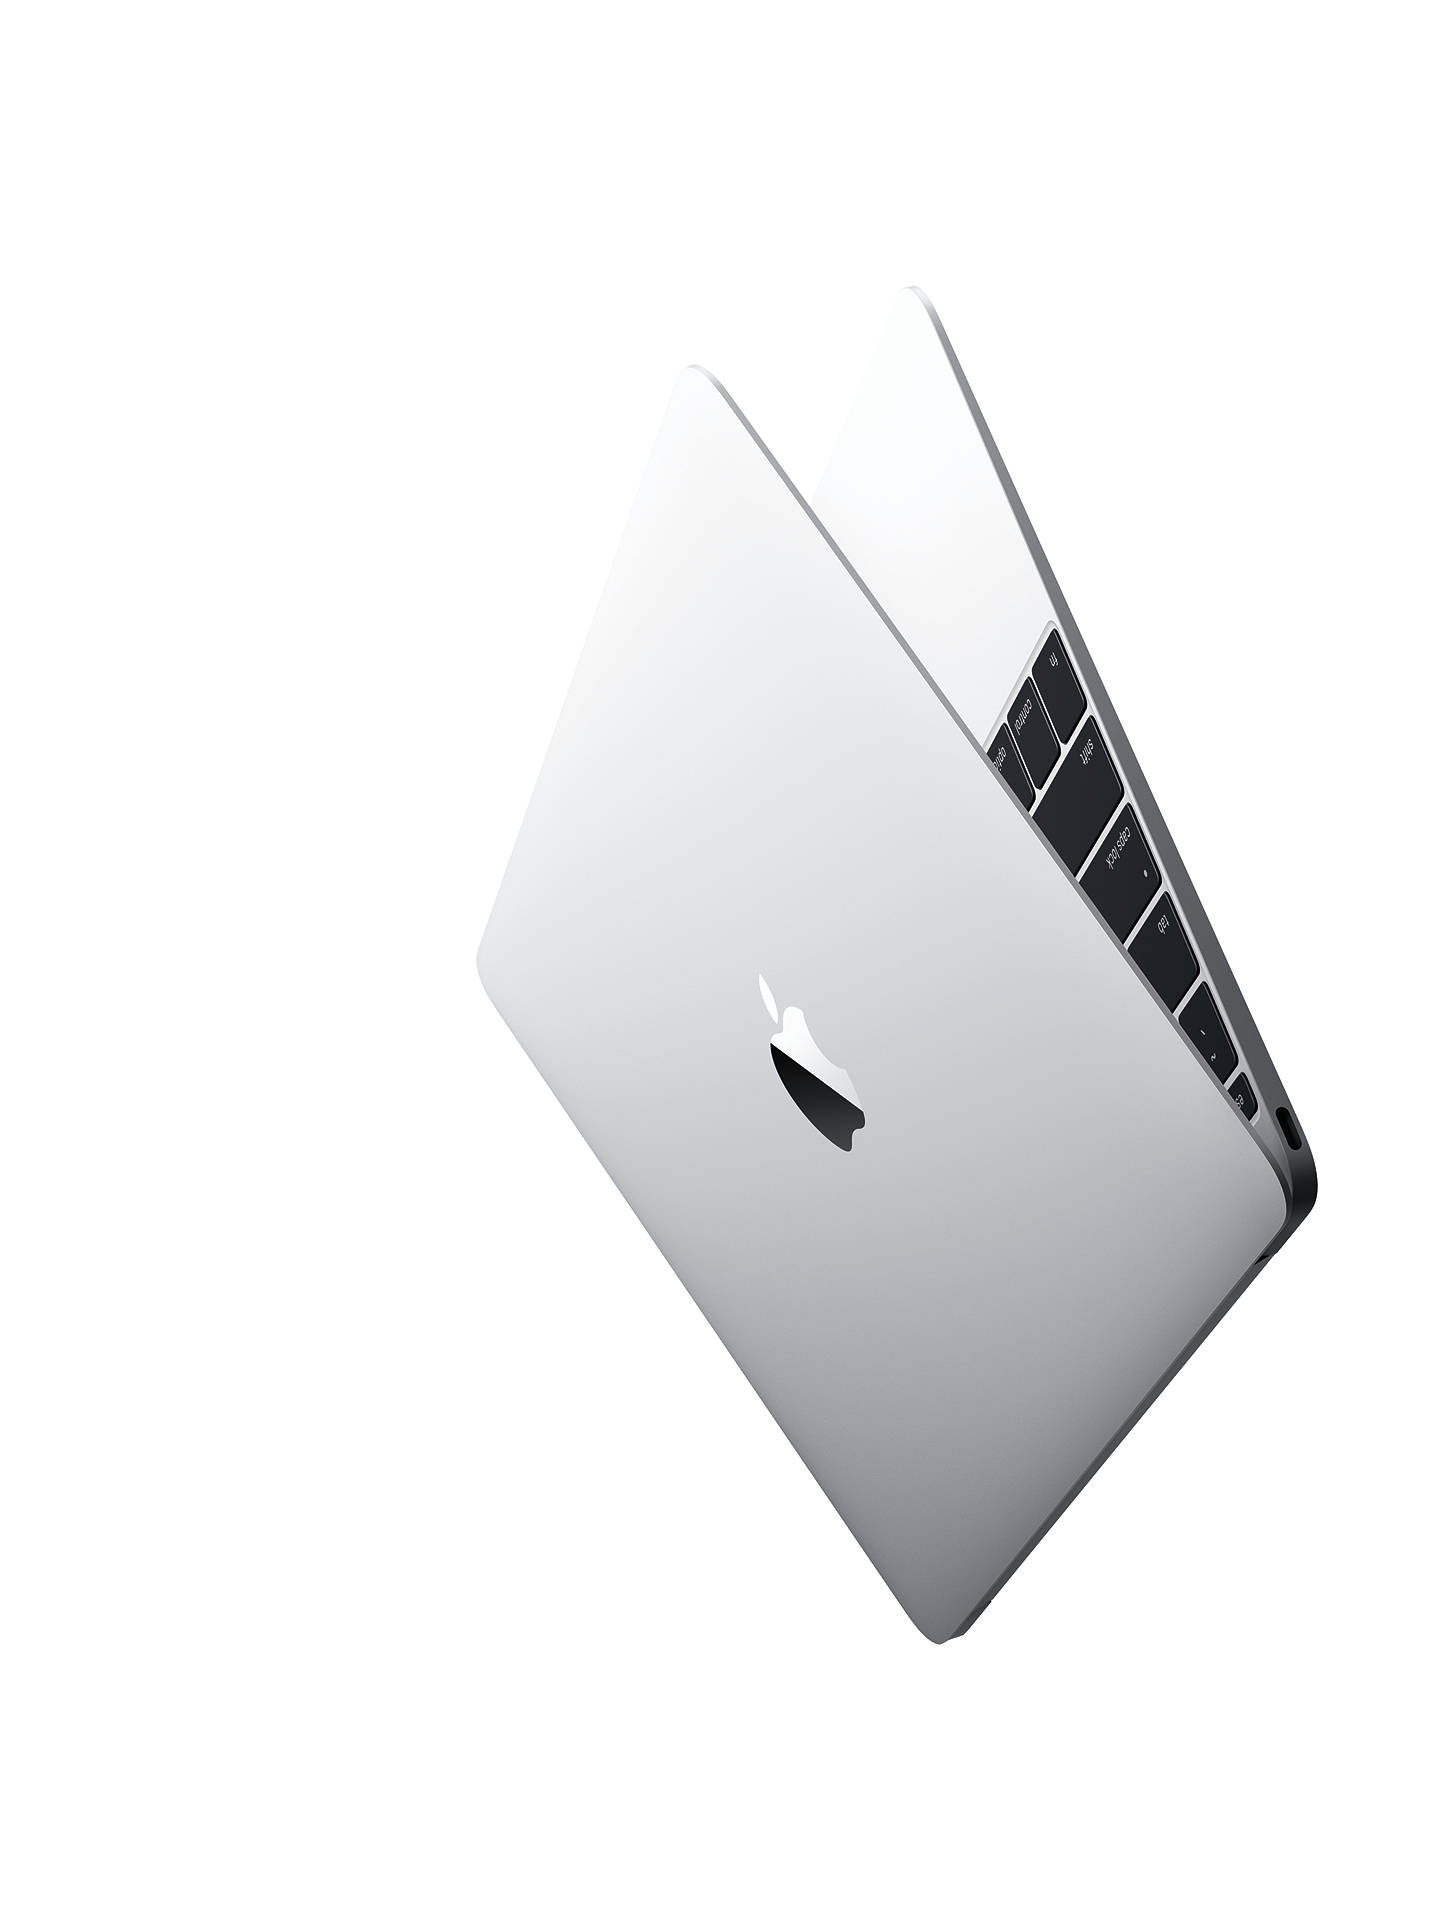 "Buy 2017 Apple MacBook 12"", Intel Core m3, 8GB RAM, 256GB SSD, Intel HD Graphics 615, Silver Online at johnlewis.com"